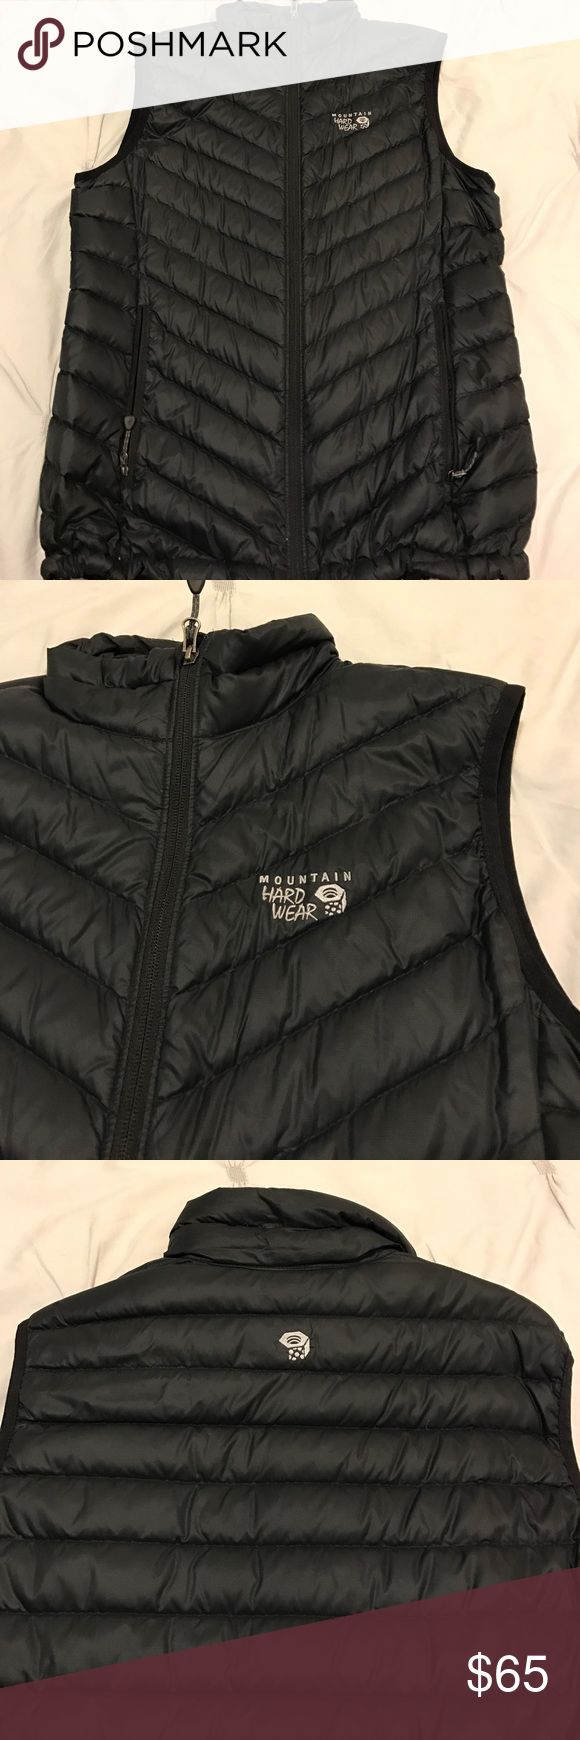 Mountain Hard Ware Puffy Vest - BLK Mountain Hardware Down Puffy Vest • QShield 800 Down • Size: Large • Color: Black • 90% Goose Down Feather Puffy • Great Condition Mountain Hard Wear Jackets & Coats Puffers